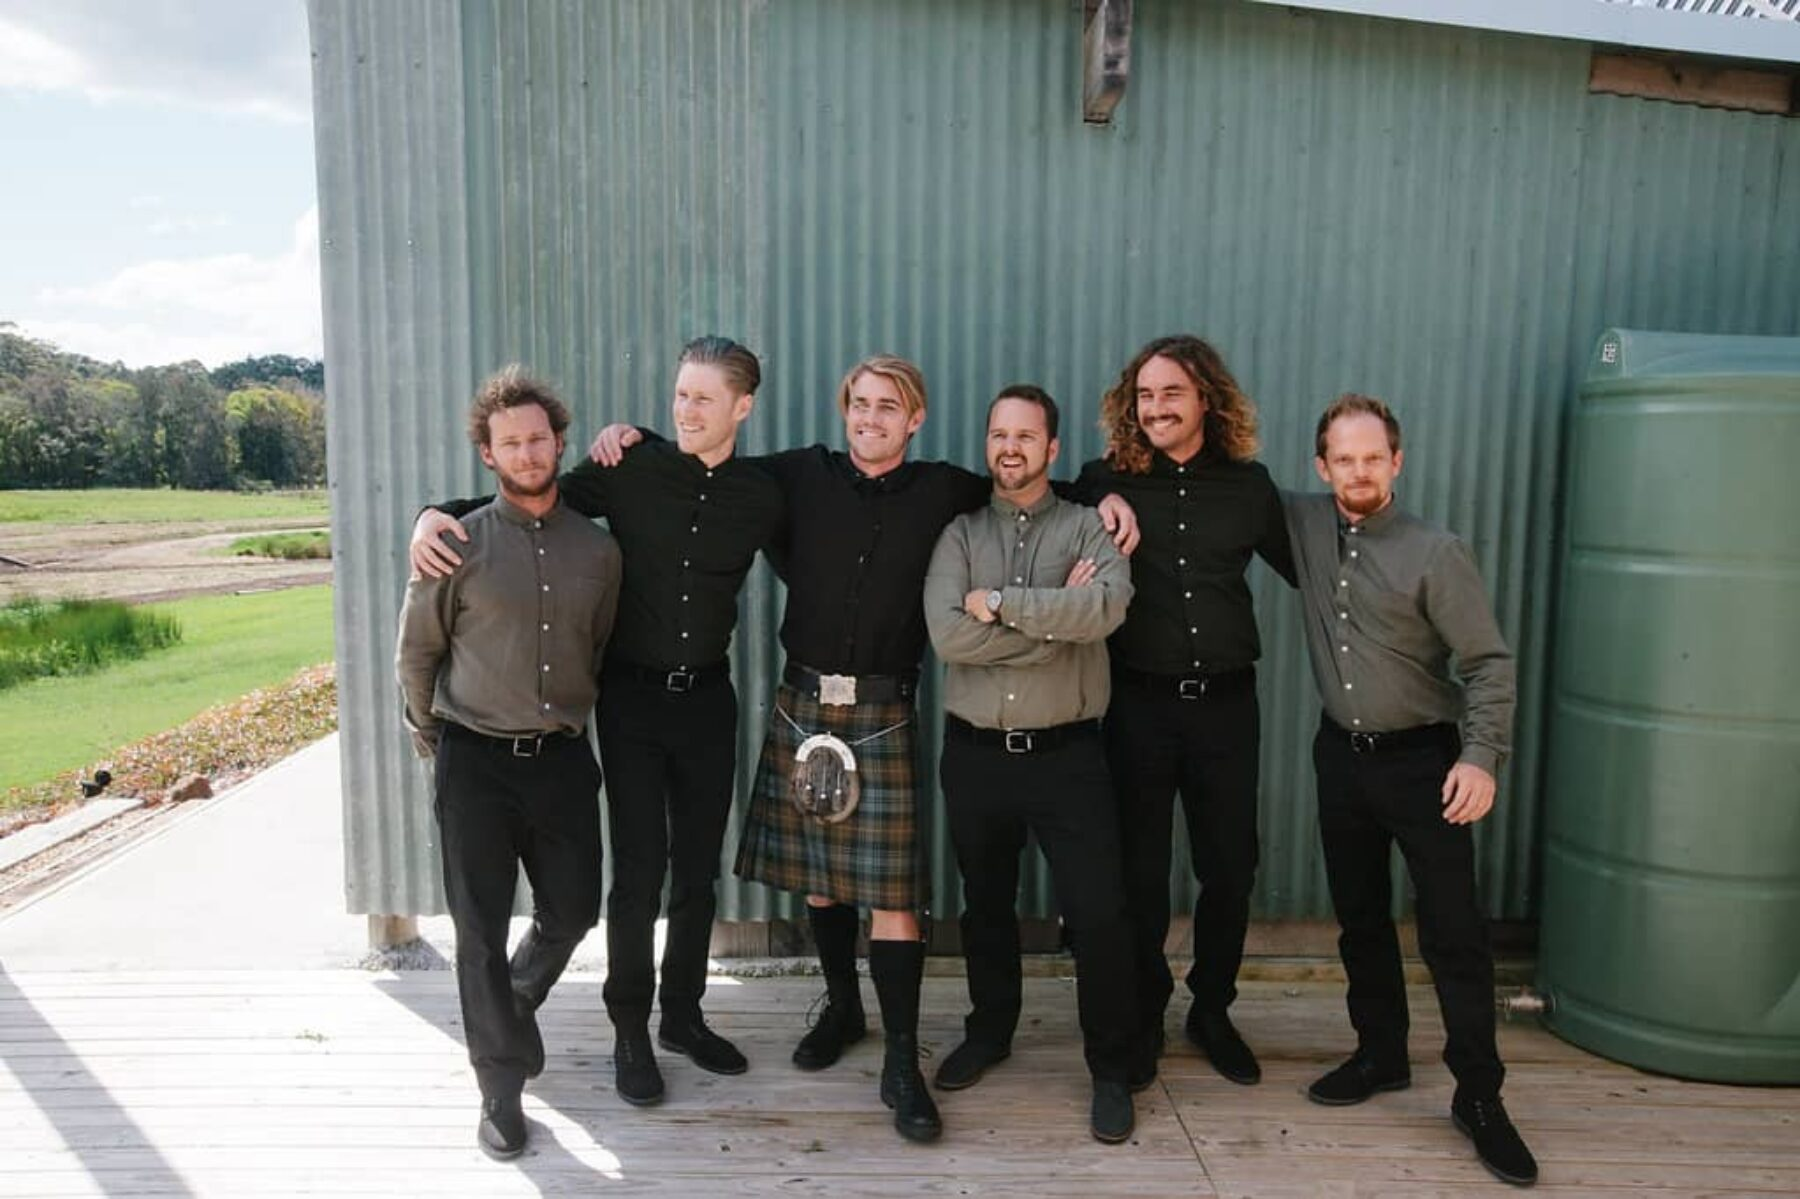 groom in tartan kilt with groomsmen